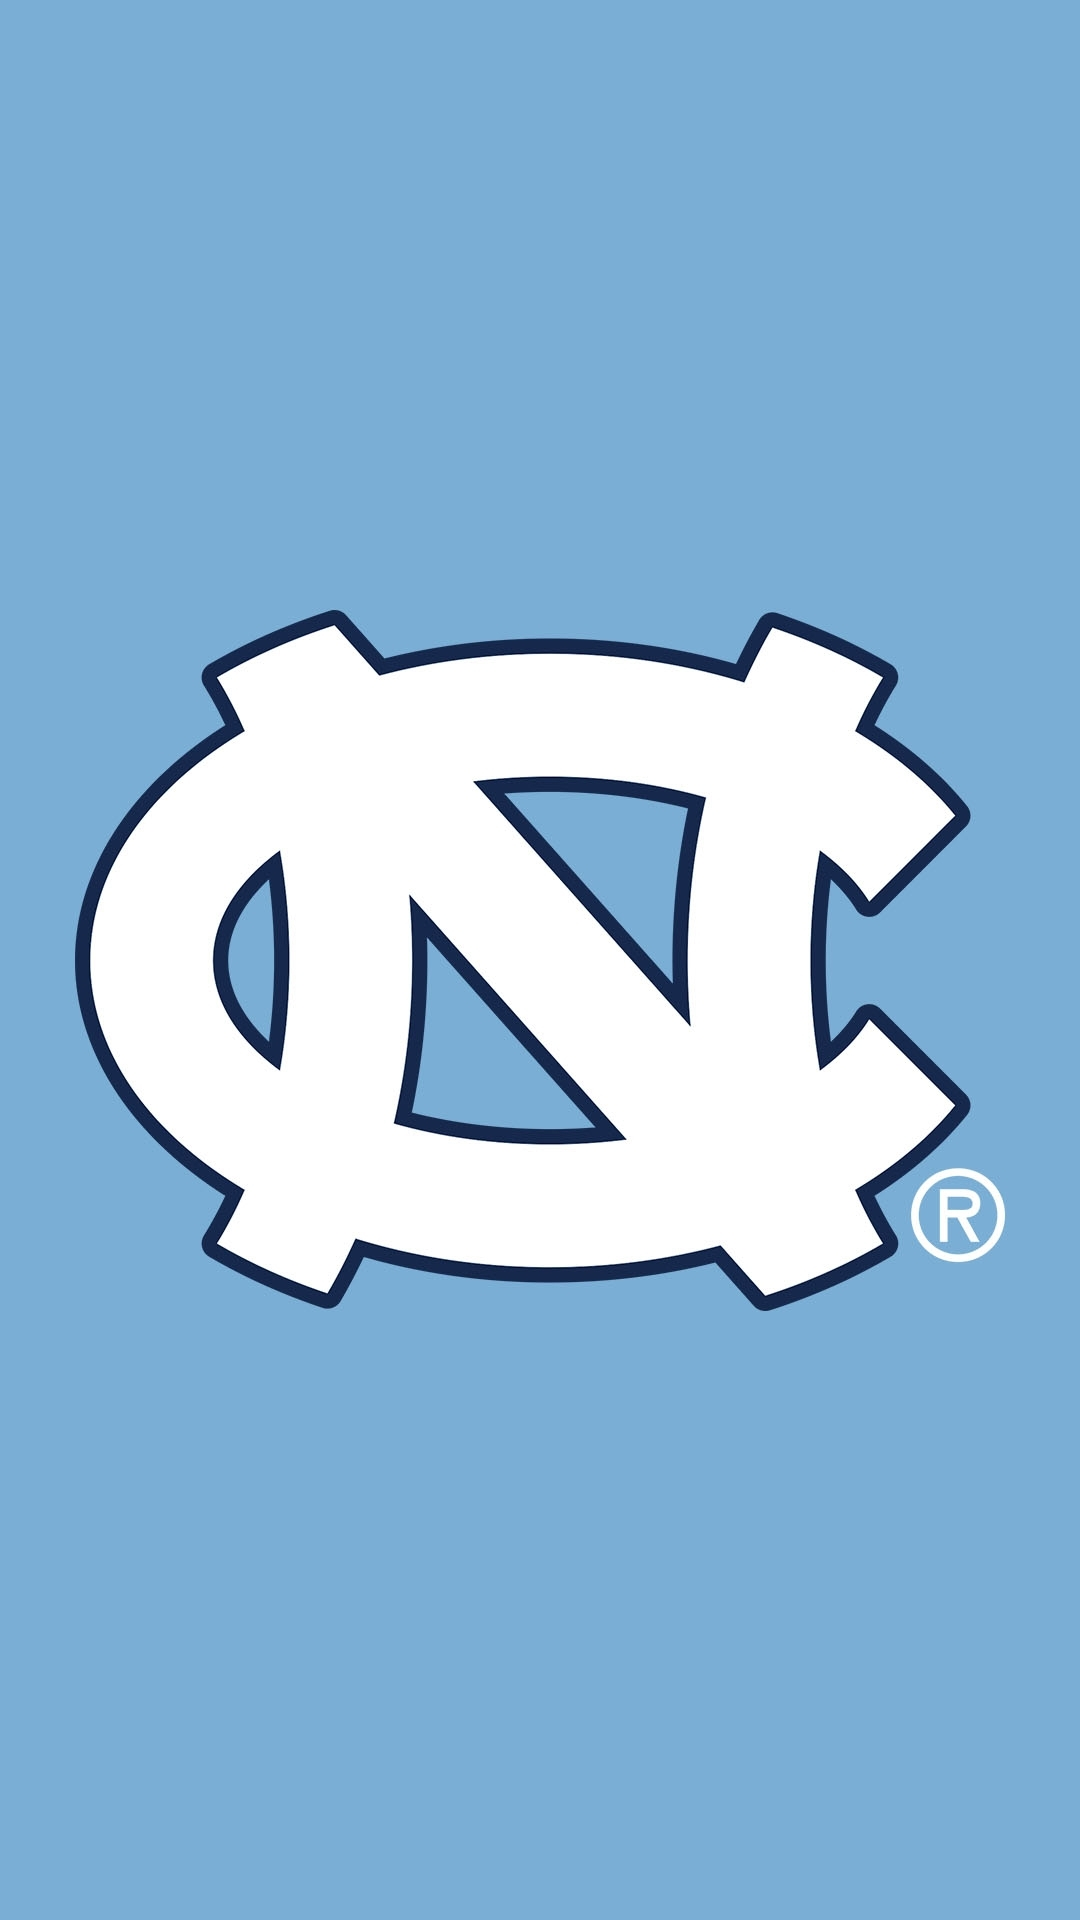 wallpapers - university of north carolina tar heels official | epic